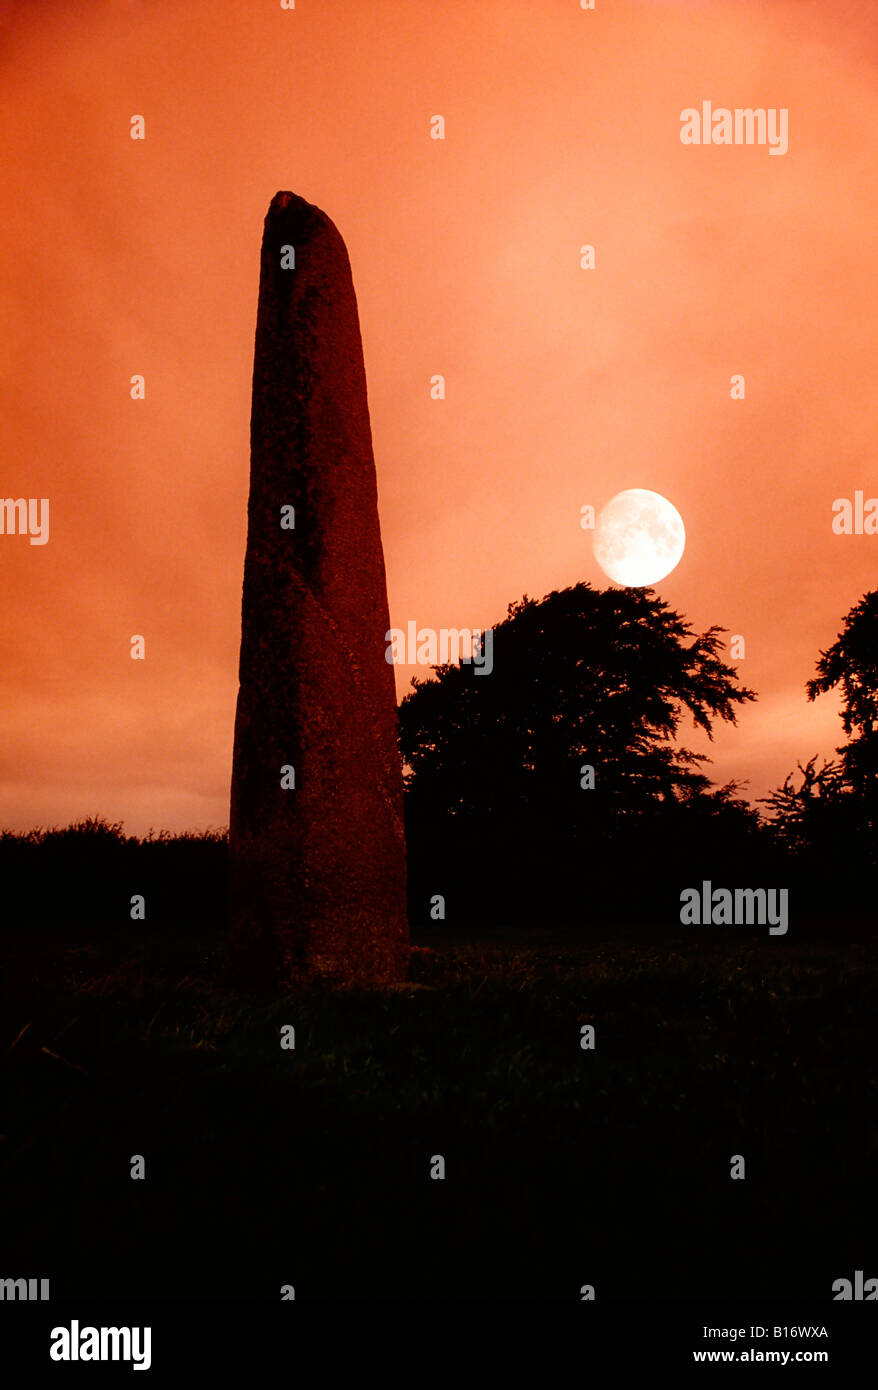 Standing stone with moon, Punchestown, Co Kildare, Ireland Stock Photo